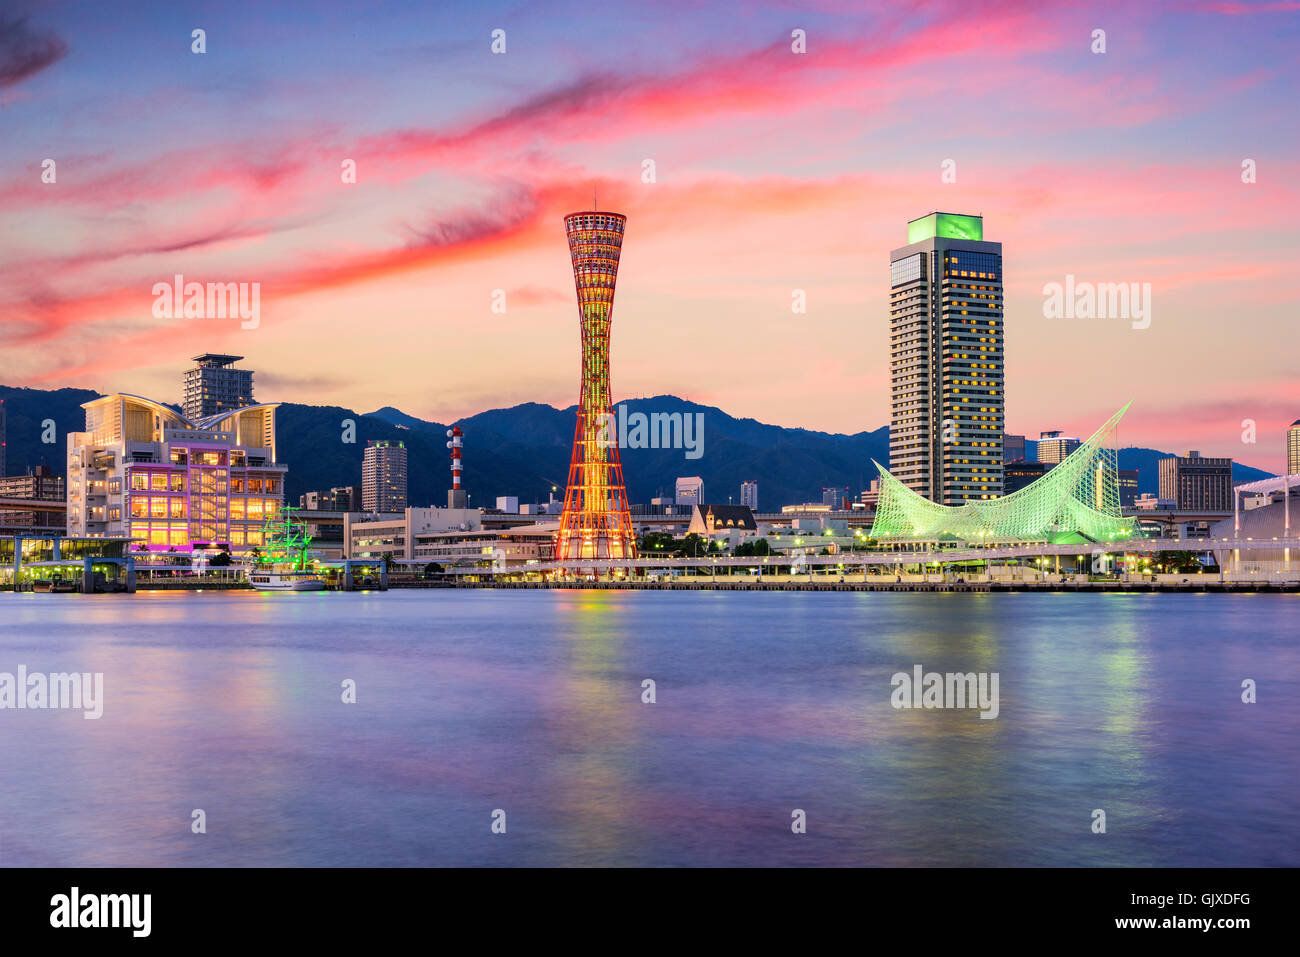 Kobe, Japan skyline at the port. - Stock Image